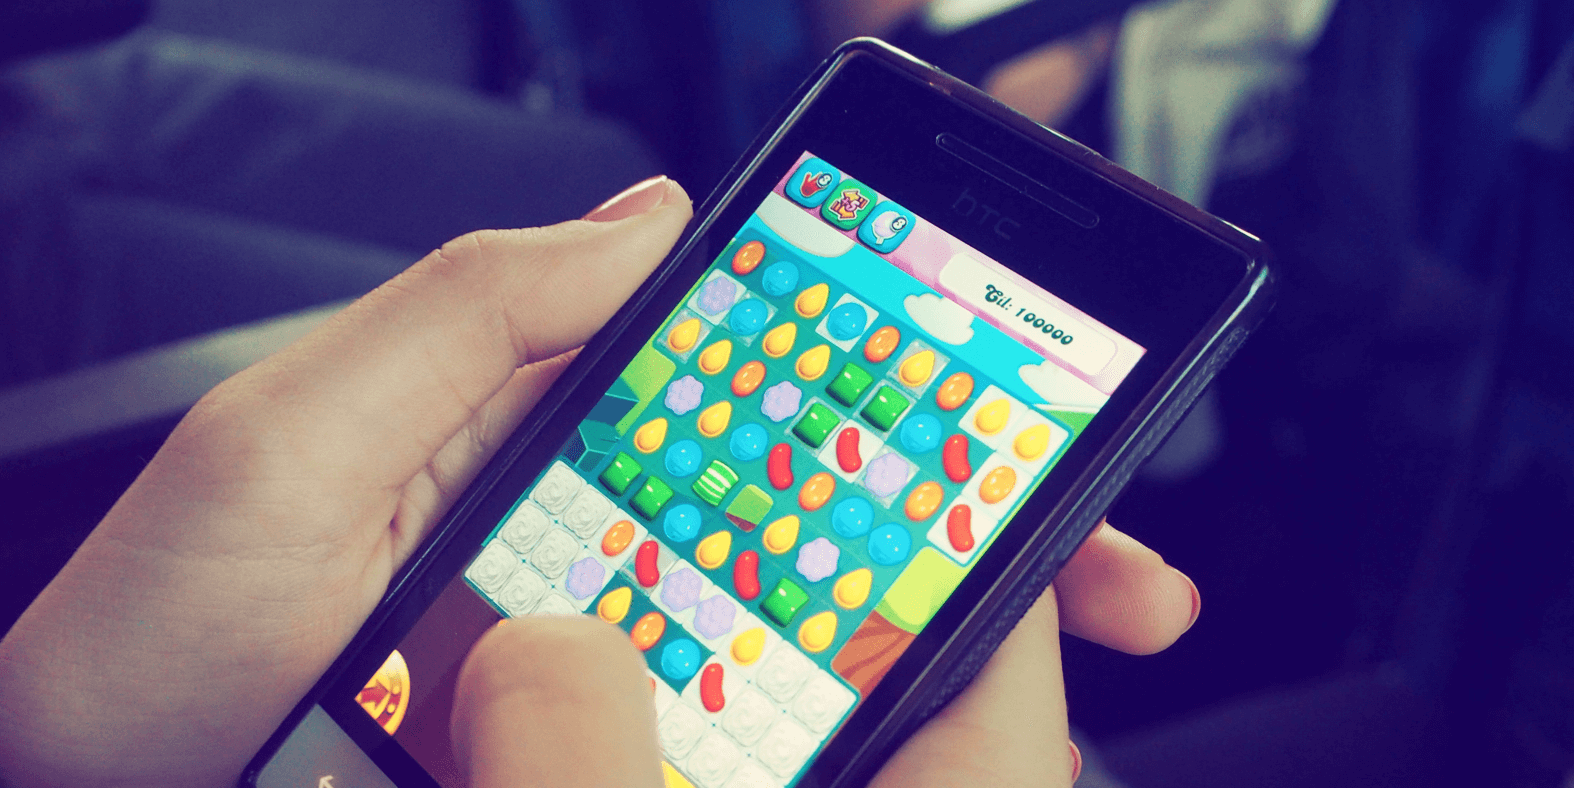 Mobile games use dynamic pricing to generate revenue